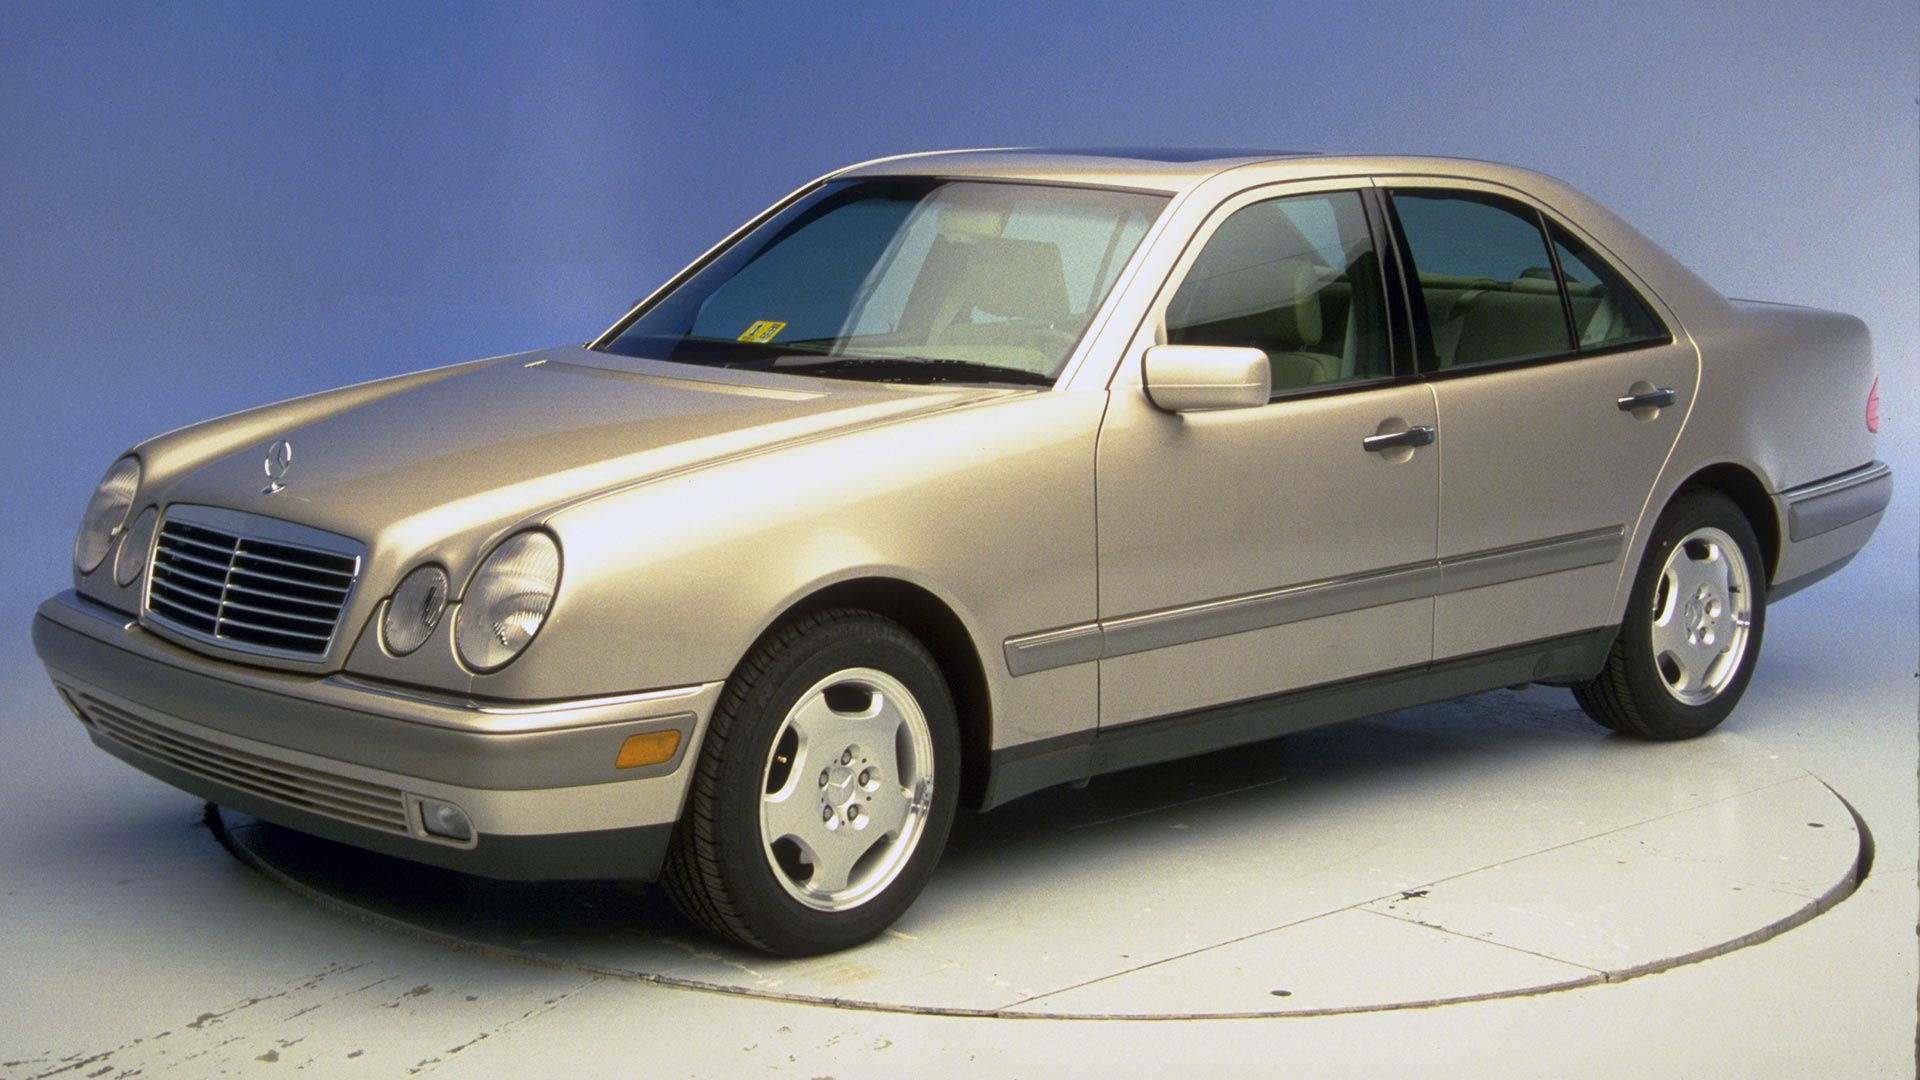 1997 Mercedes-Benz E-Class 4-door sedan